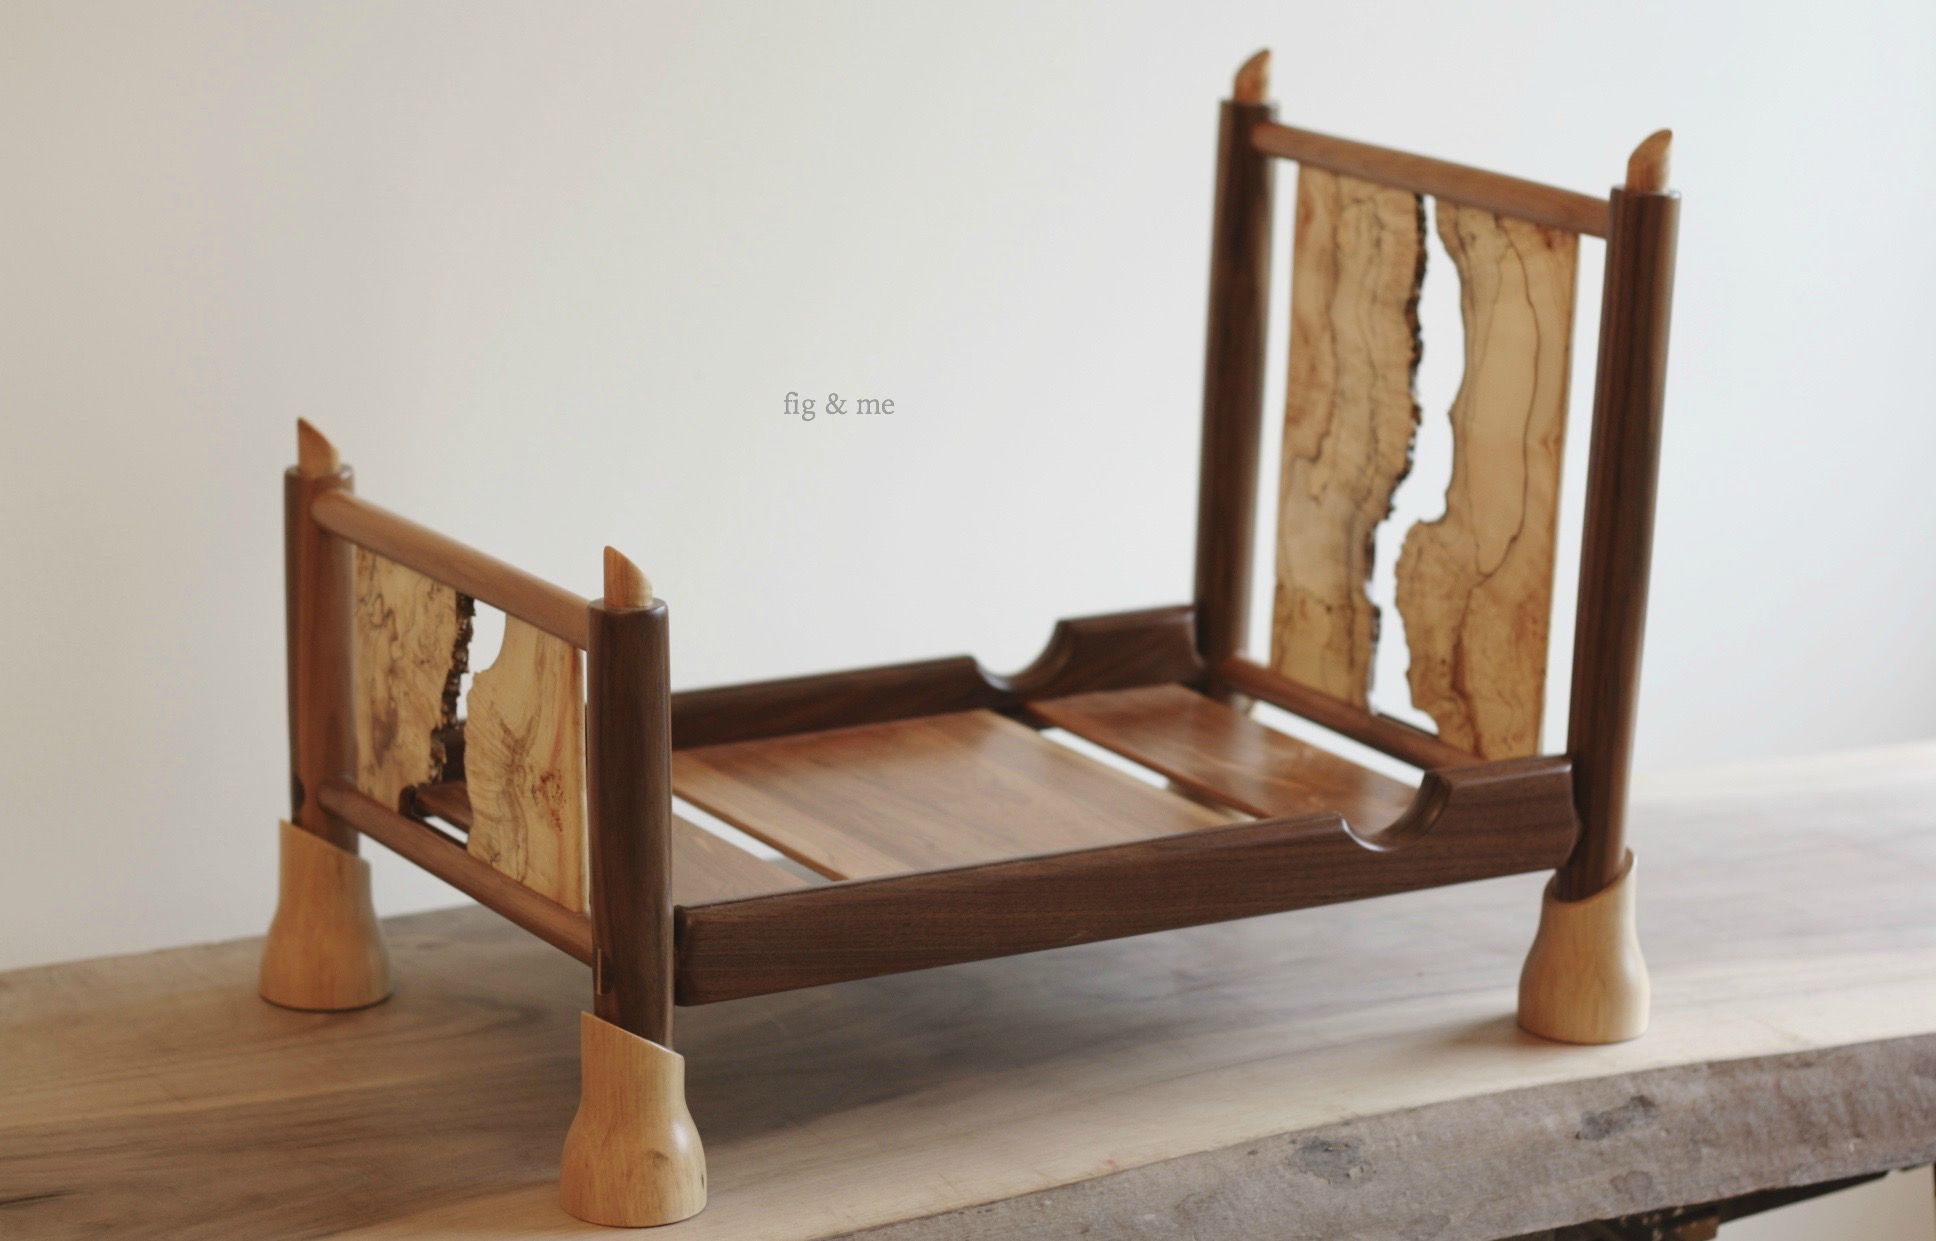 Wooden doll bed by Fig and me